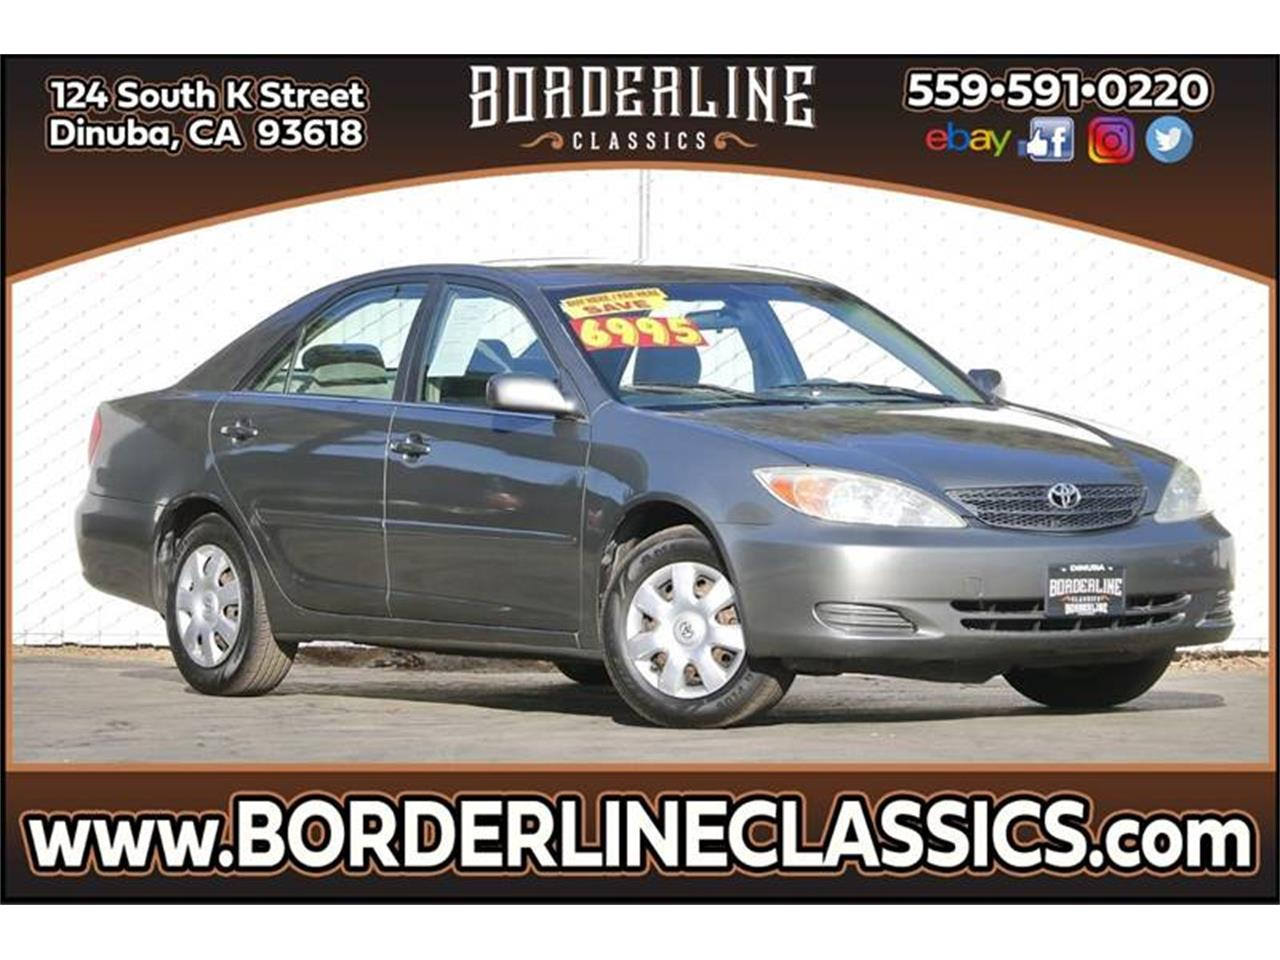 for sale 2003 toyota camry in dinuba, california cars - dinuba, ca at geebo